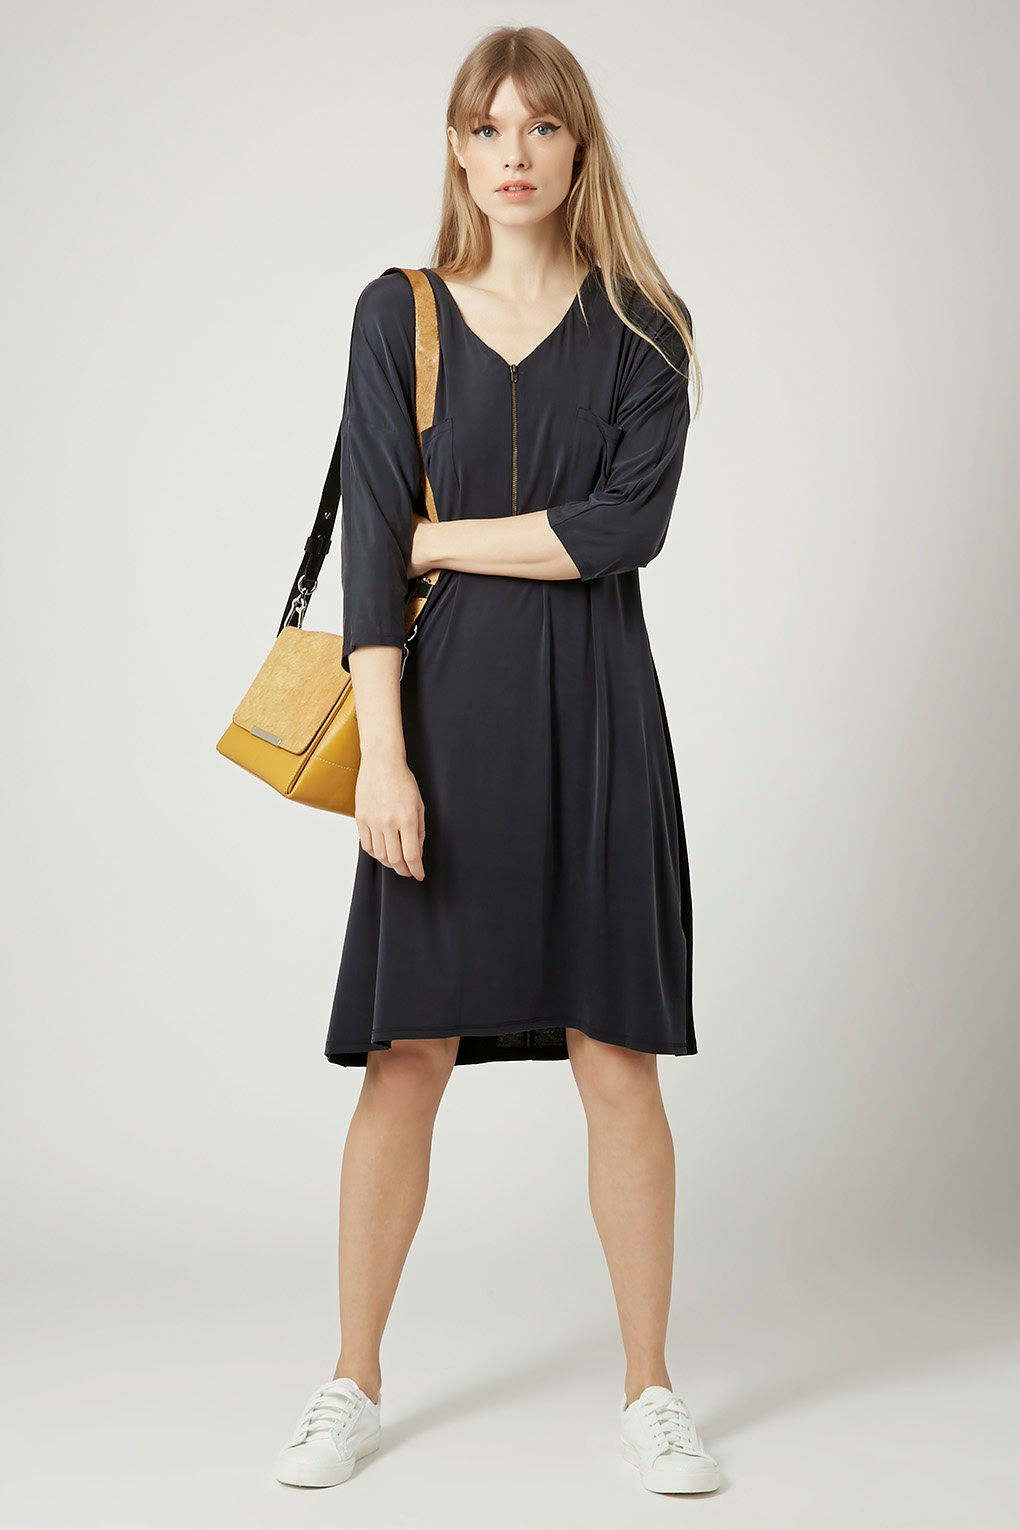 navy zip dress